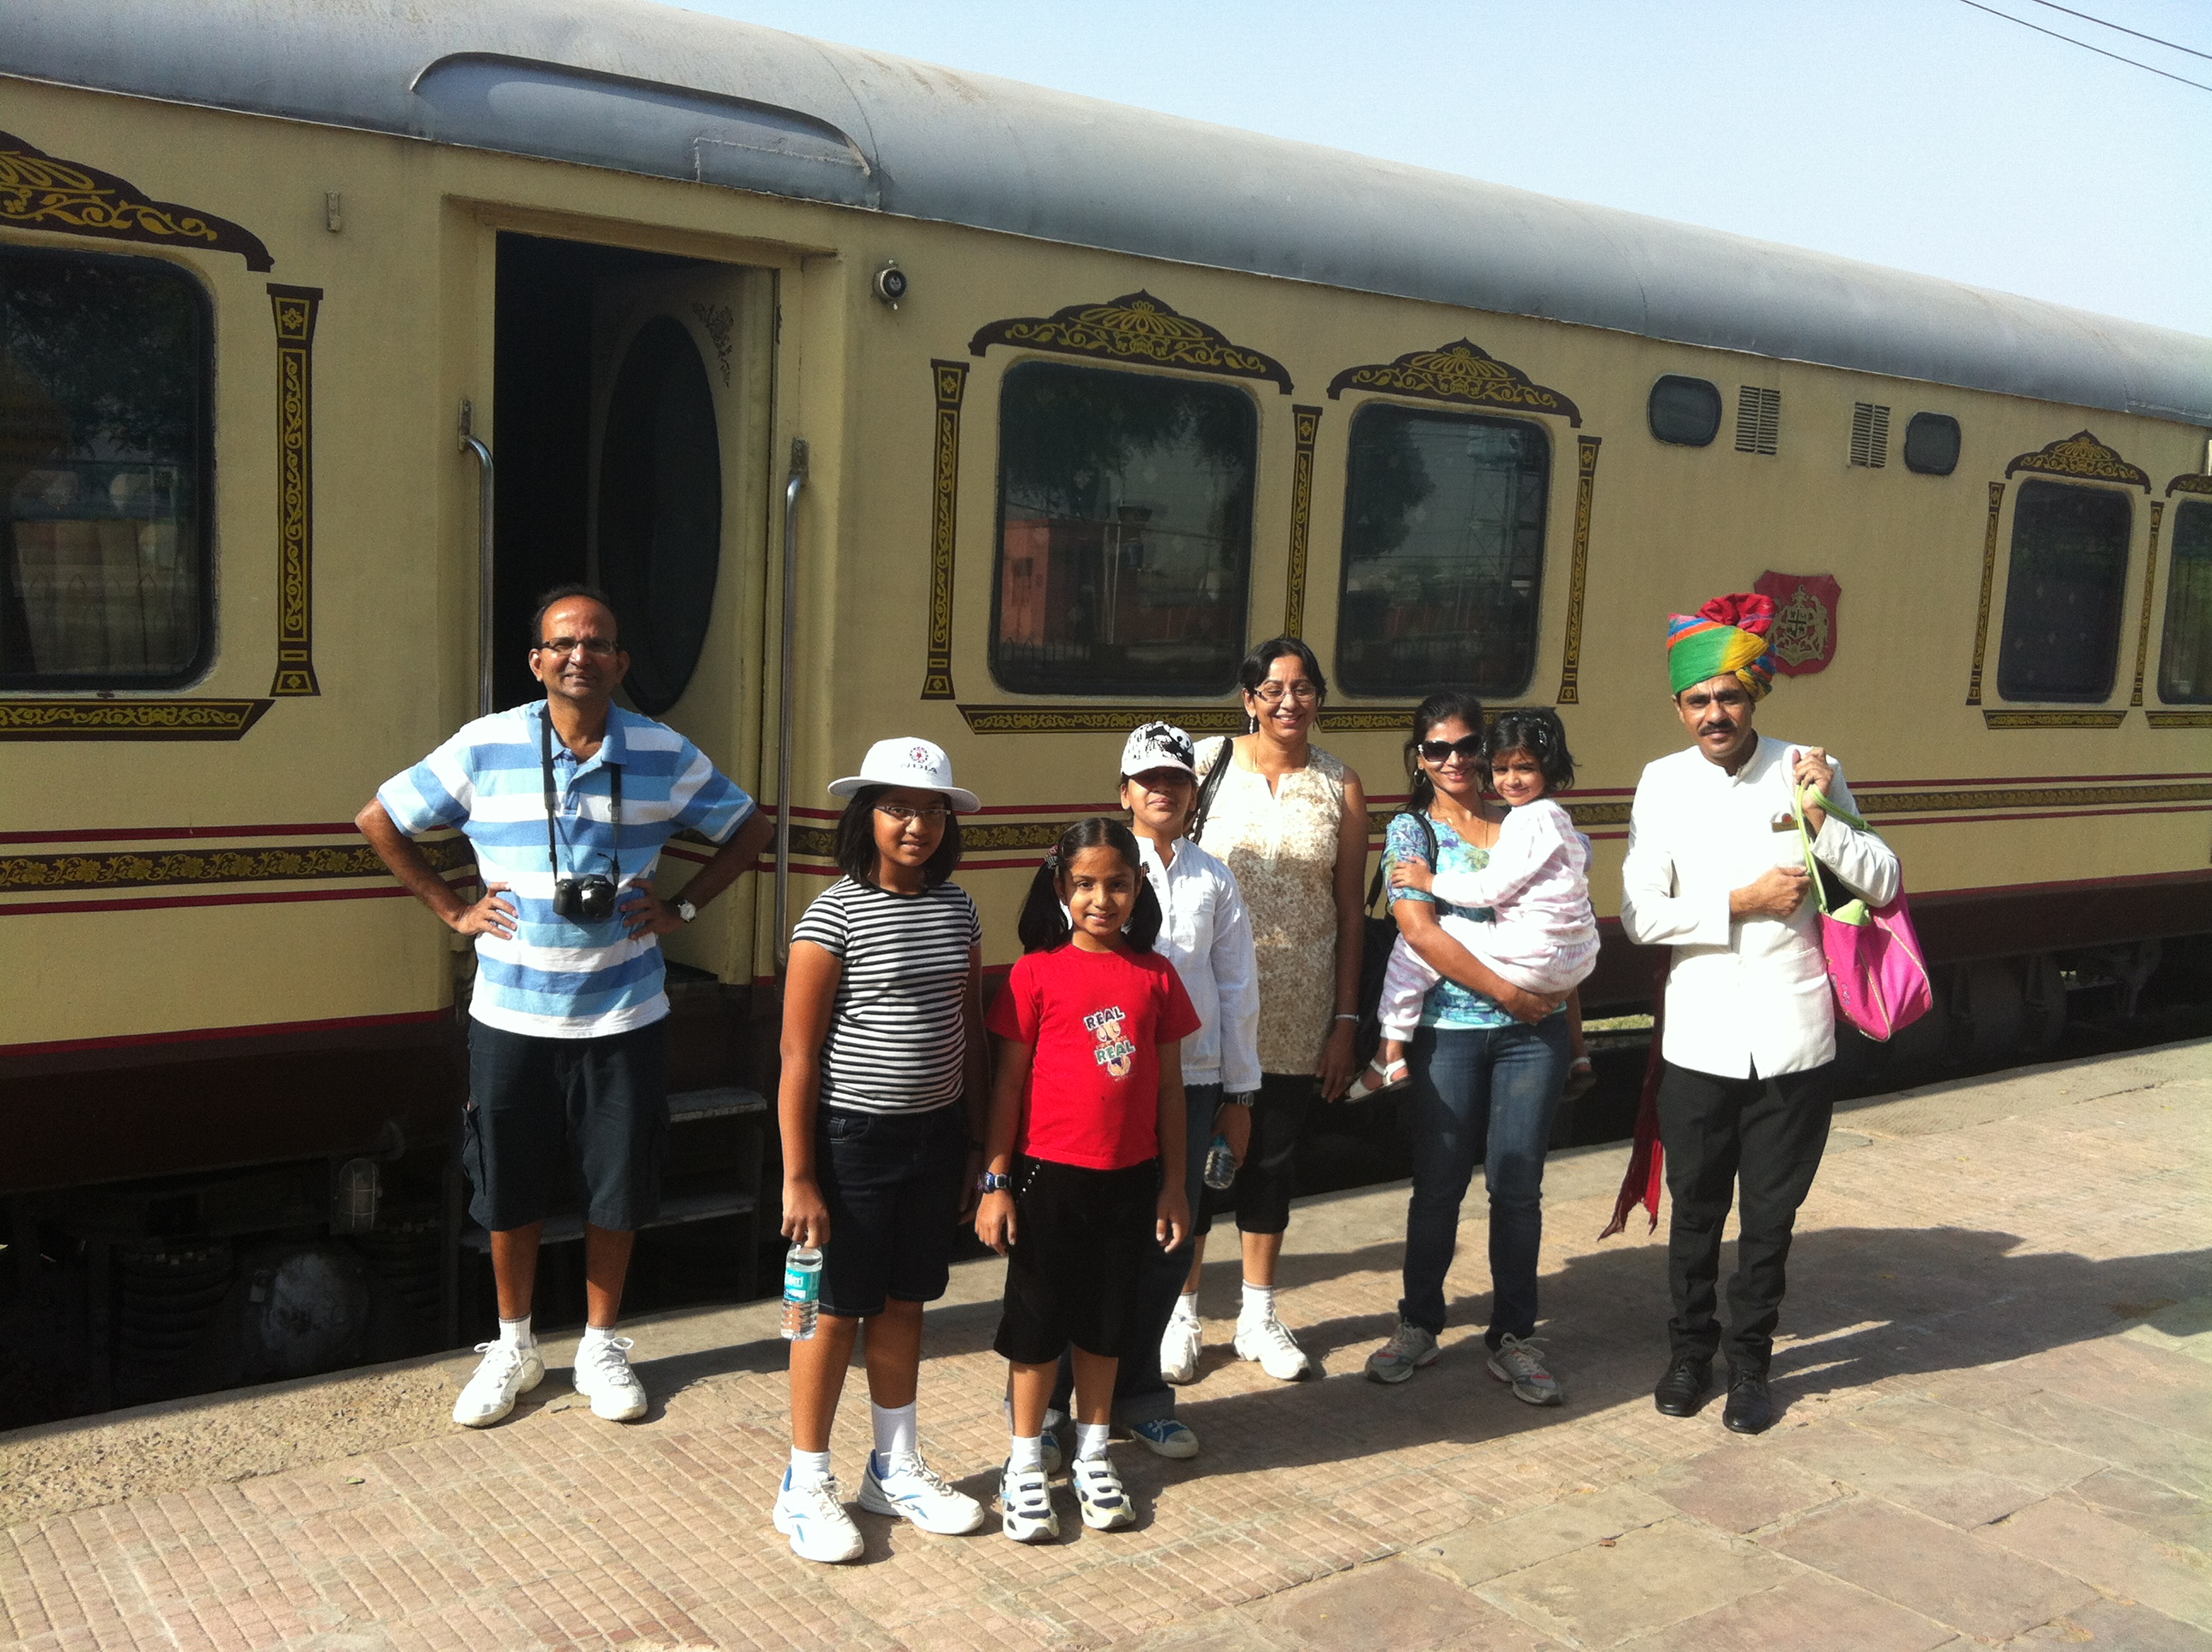 Palace on Wheels – Great way to see Rajasthan